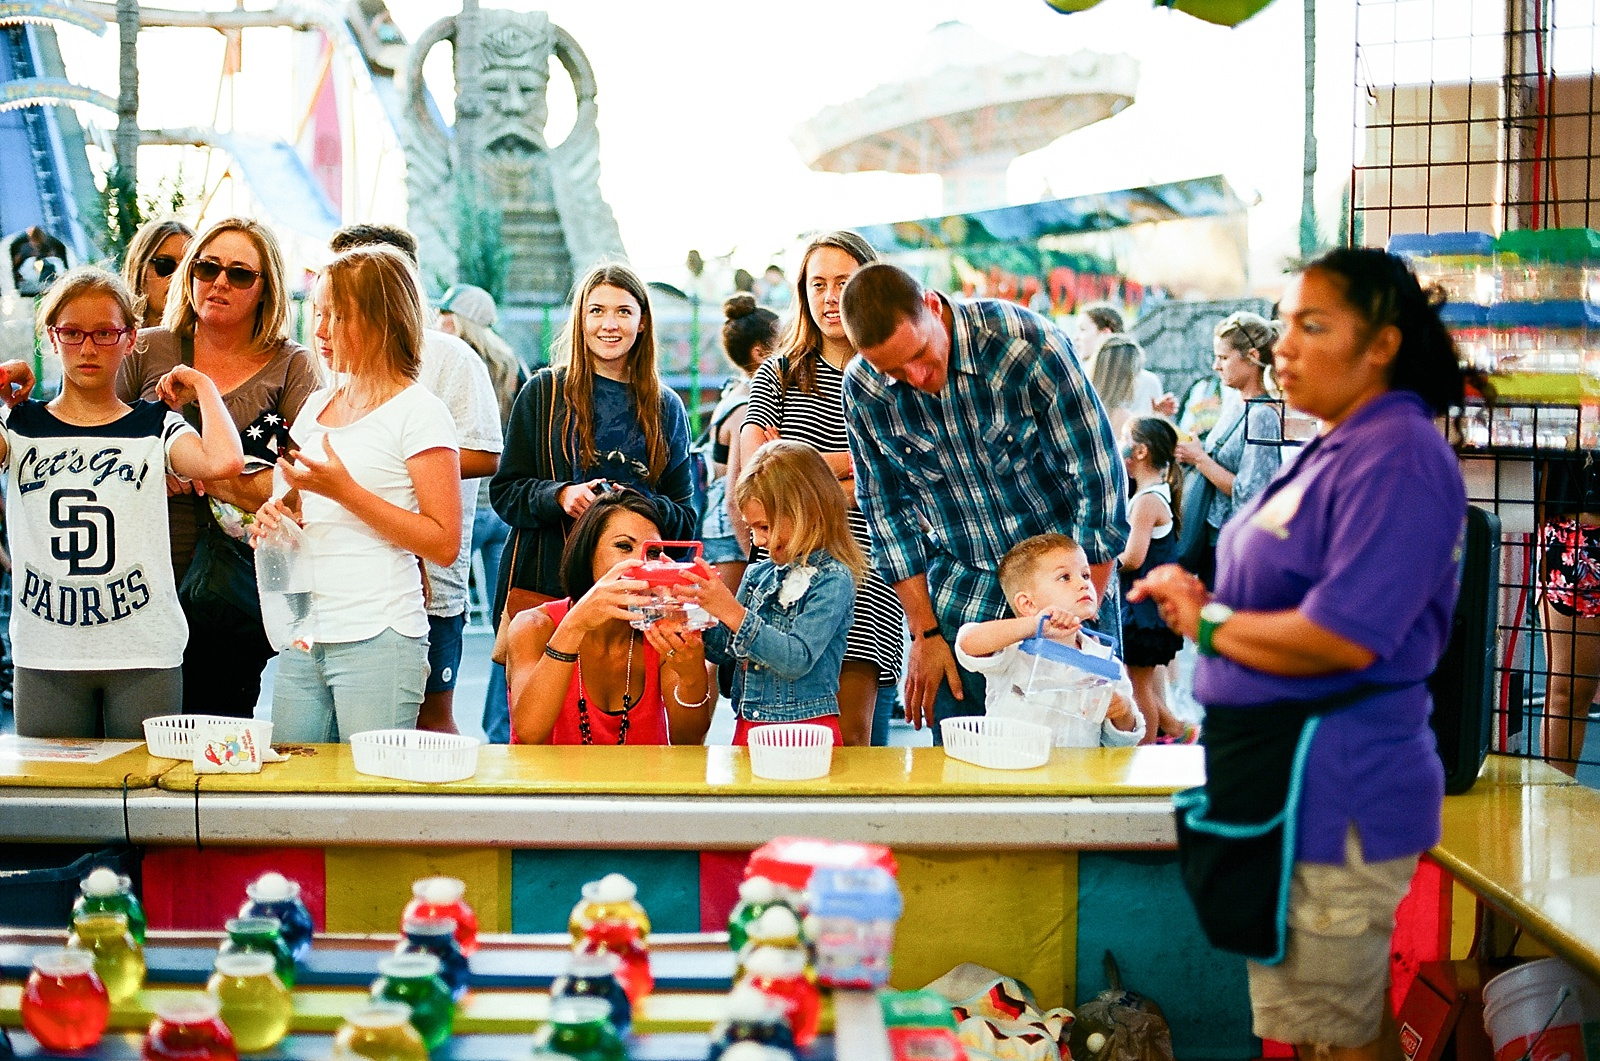 Family photo fun at the San Diego County Fair by family photographer Lauren Nygard